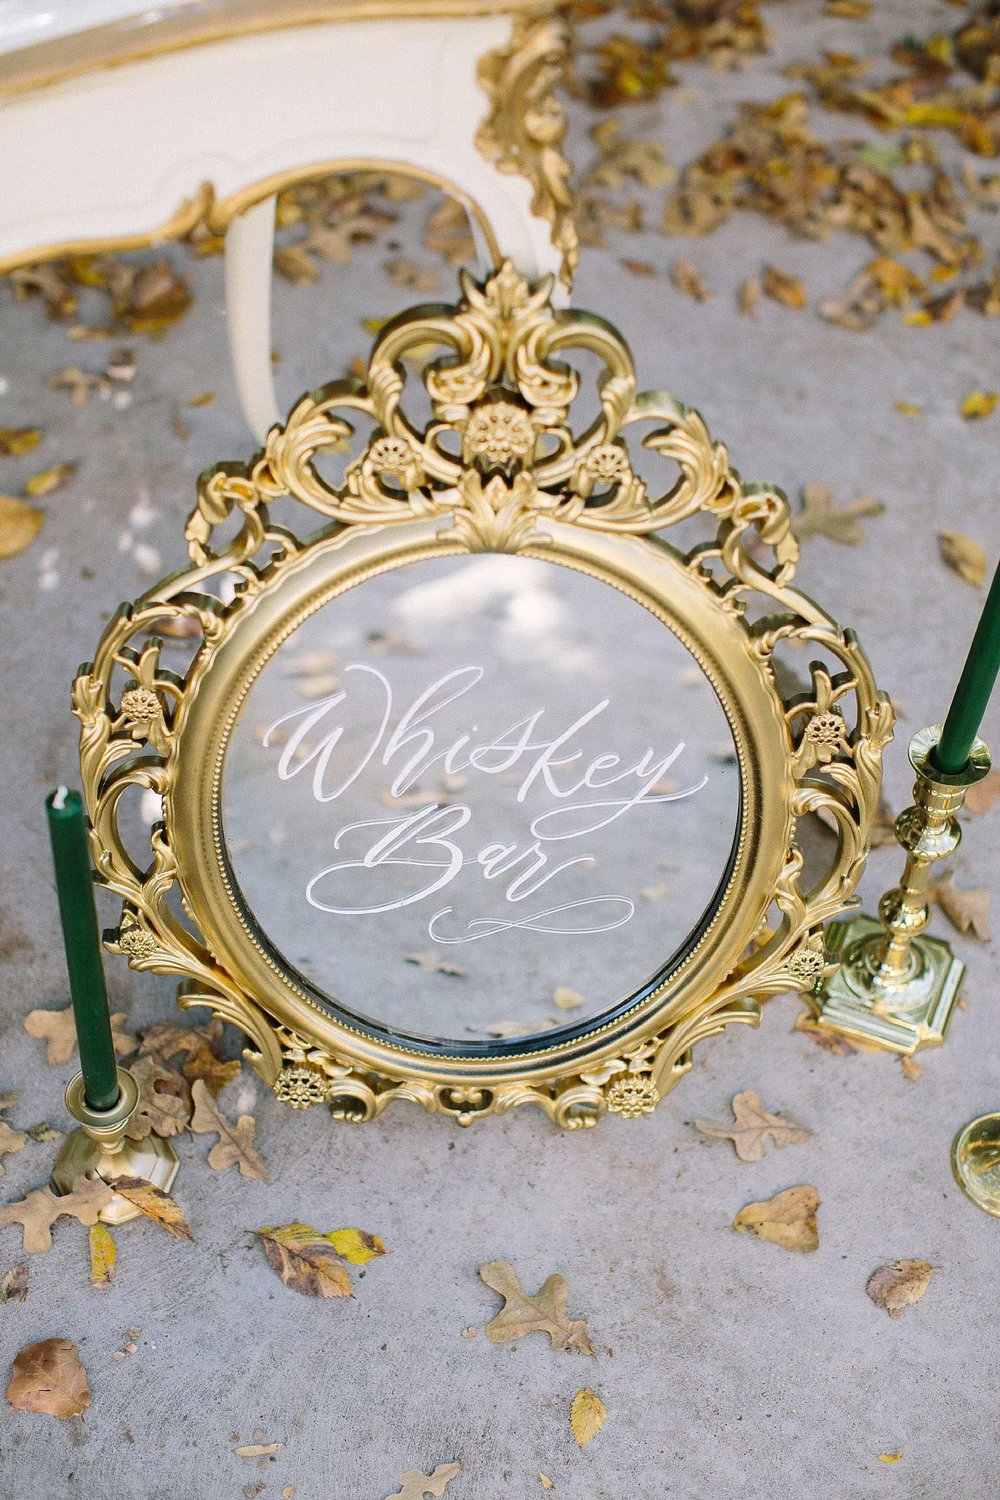 aristide mansfield wedding whiskey bar mirror sign